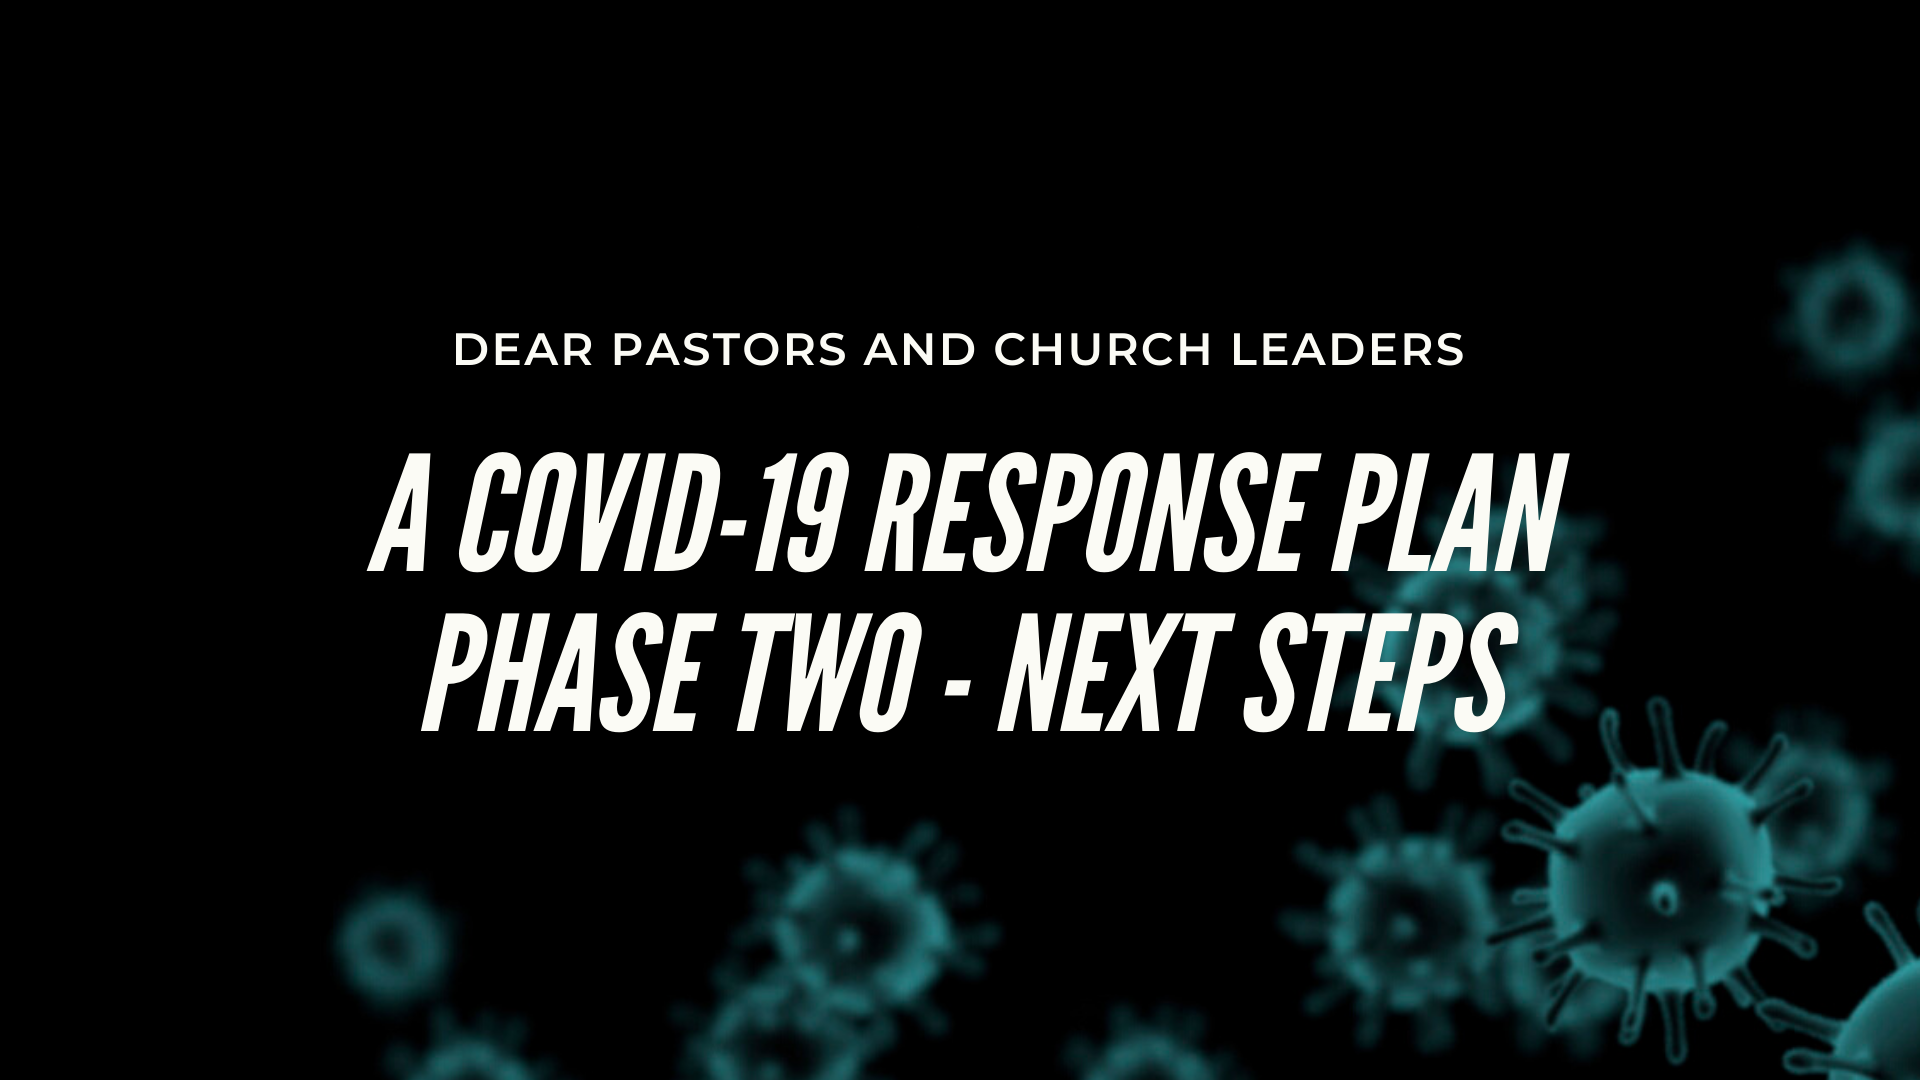 COVID-19 Phase Two: Next Steps